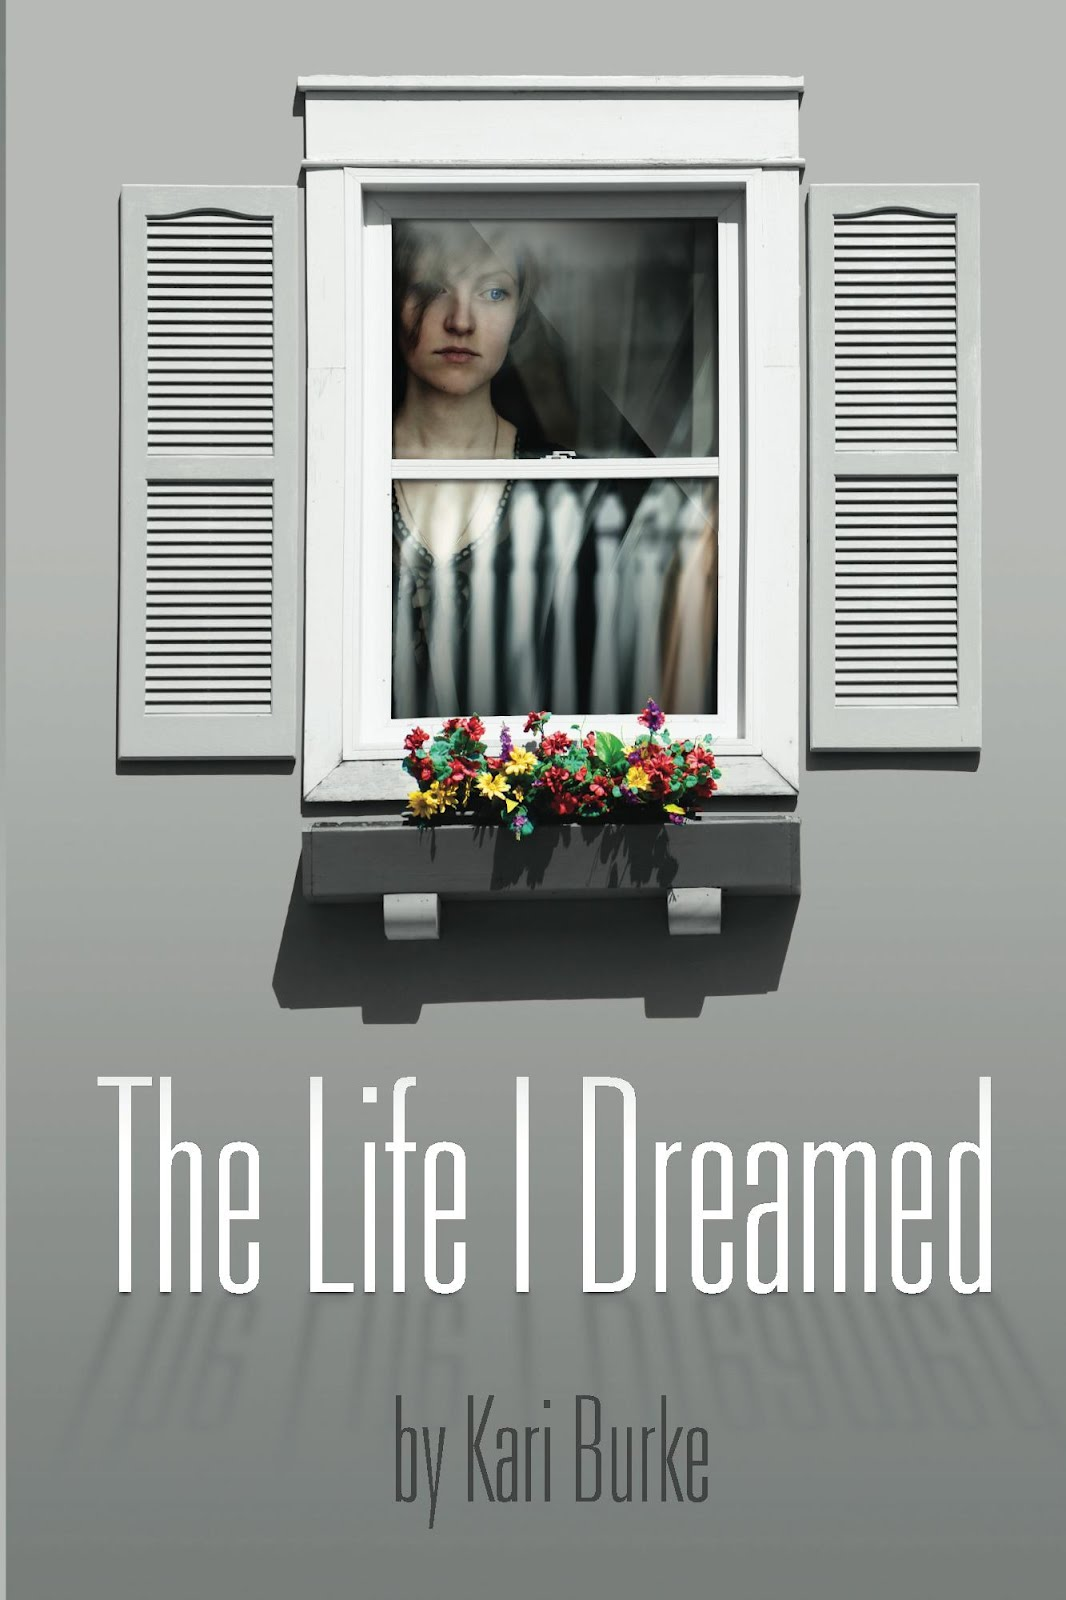 http://www.amazon.com/The-Life-Dreamed-Kari-Burke-ebook/dp/B008GNLLI8/ref=sr_1_1?ie=UTF8&qid=1392063223&sr=8-1&keywords=the+life+i+dreamed